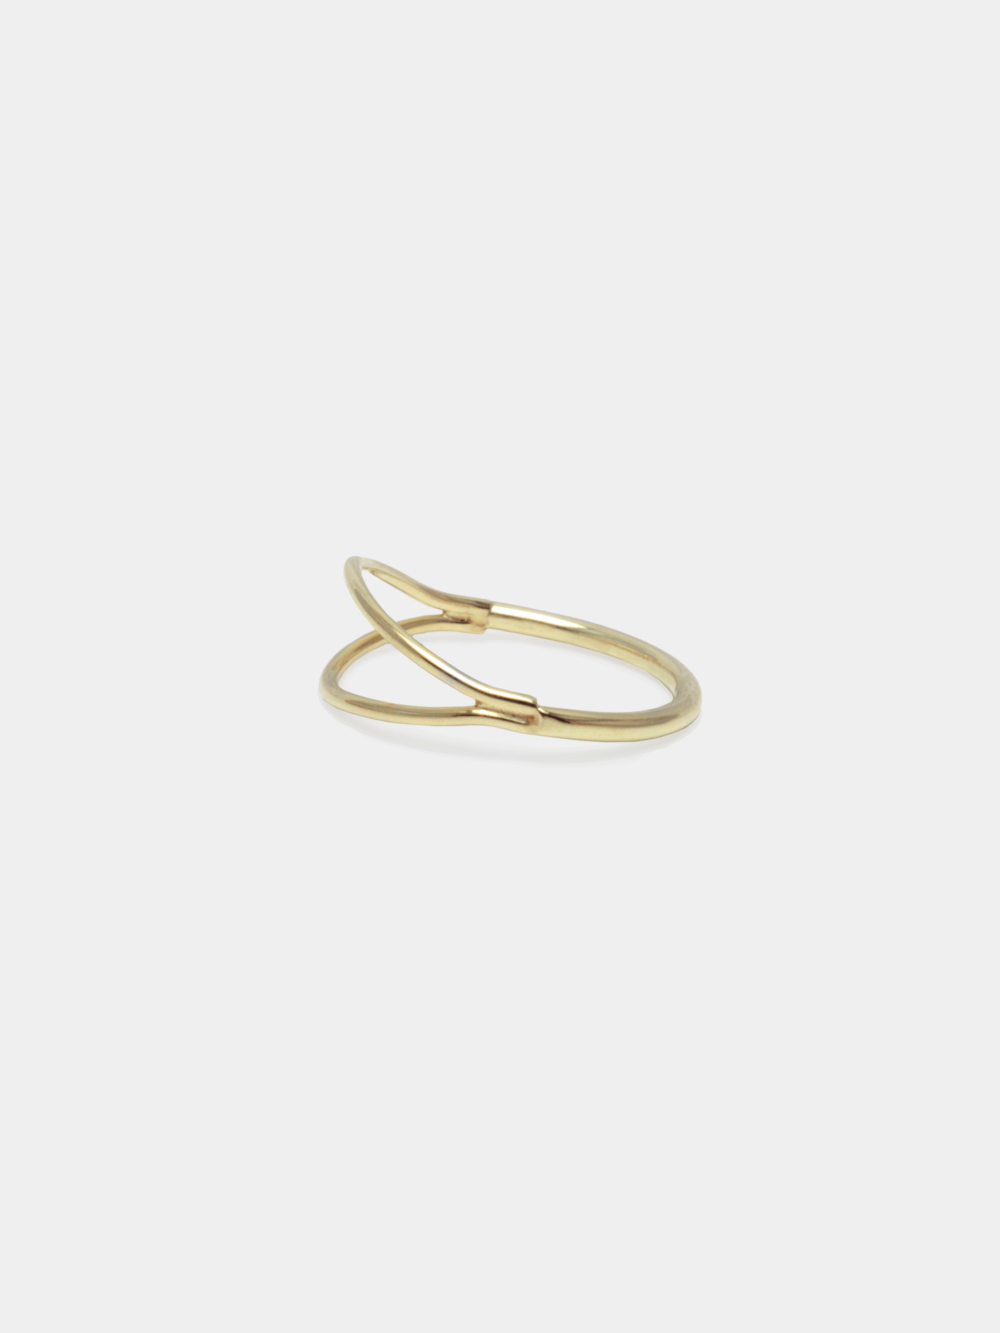 BEPART DOUBLE RING Handmade in Bepart studio in Slovakia, the Double finger ring from Circle collection is geometric, pure but modern take on minimal ring. Available in 14 k gold or sterling silver.